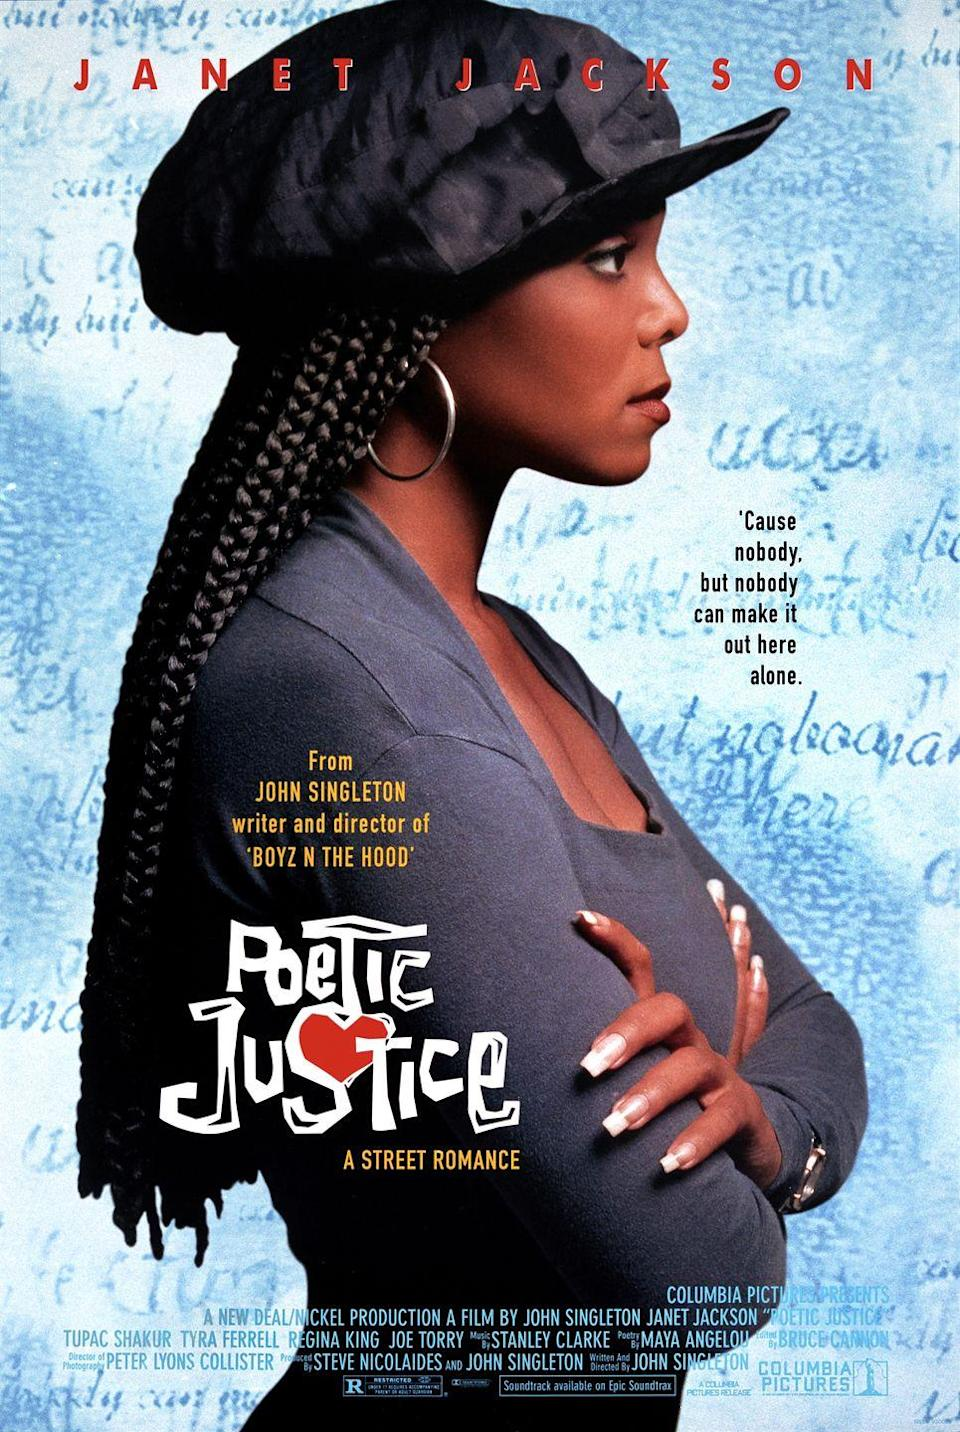 "<p>As a result of her style in the starring role in 1993's <em><a href=""https://www.amazon.com/Poetic-Justice-Regina-King/dp/0767821955?tag=syn-yahoo-20&ascsubtag=%5Bartid%7C10052.g.31027503%5Bsrc%7Cyahoo-us"" rel=""nofollow noopener"" target=""_blank"" data-ylk=""slk:Poetic Justice"" class=""link rapid-noclick-resp"">Poetic Justice</a></em>, Janet Jackson inspired women to wear their hair in <a href=""https://www.goodhousekeeping.com/beauty/hair/tips/g1894/celebrity-hairstyles-braids/"" rel=""nofollow noopener"" target=""_blank"" data-ylk=""slk:long box braids"" class=""link rapid-noclick-resp"">long box braids</a>.</p>"